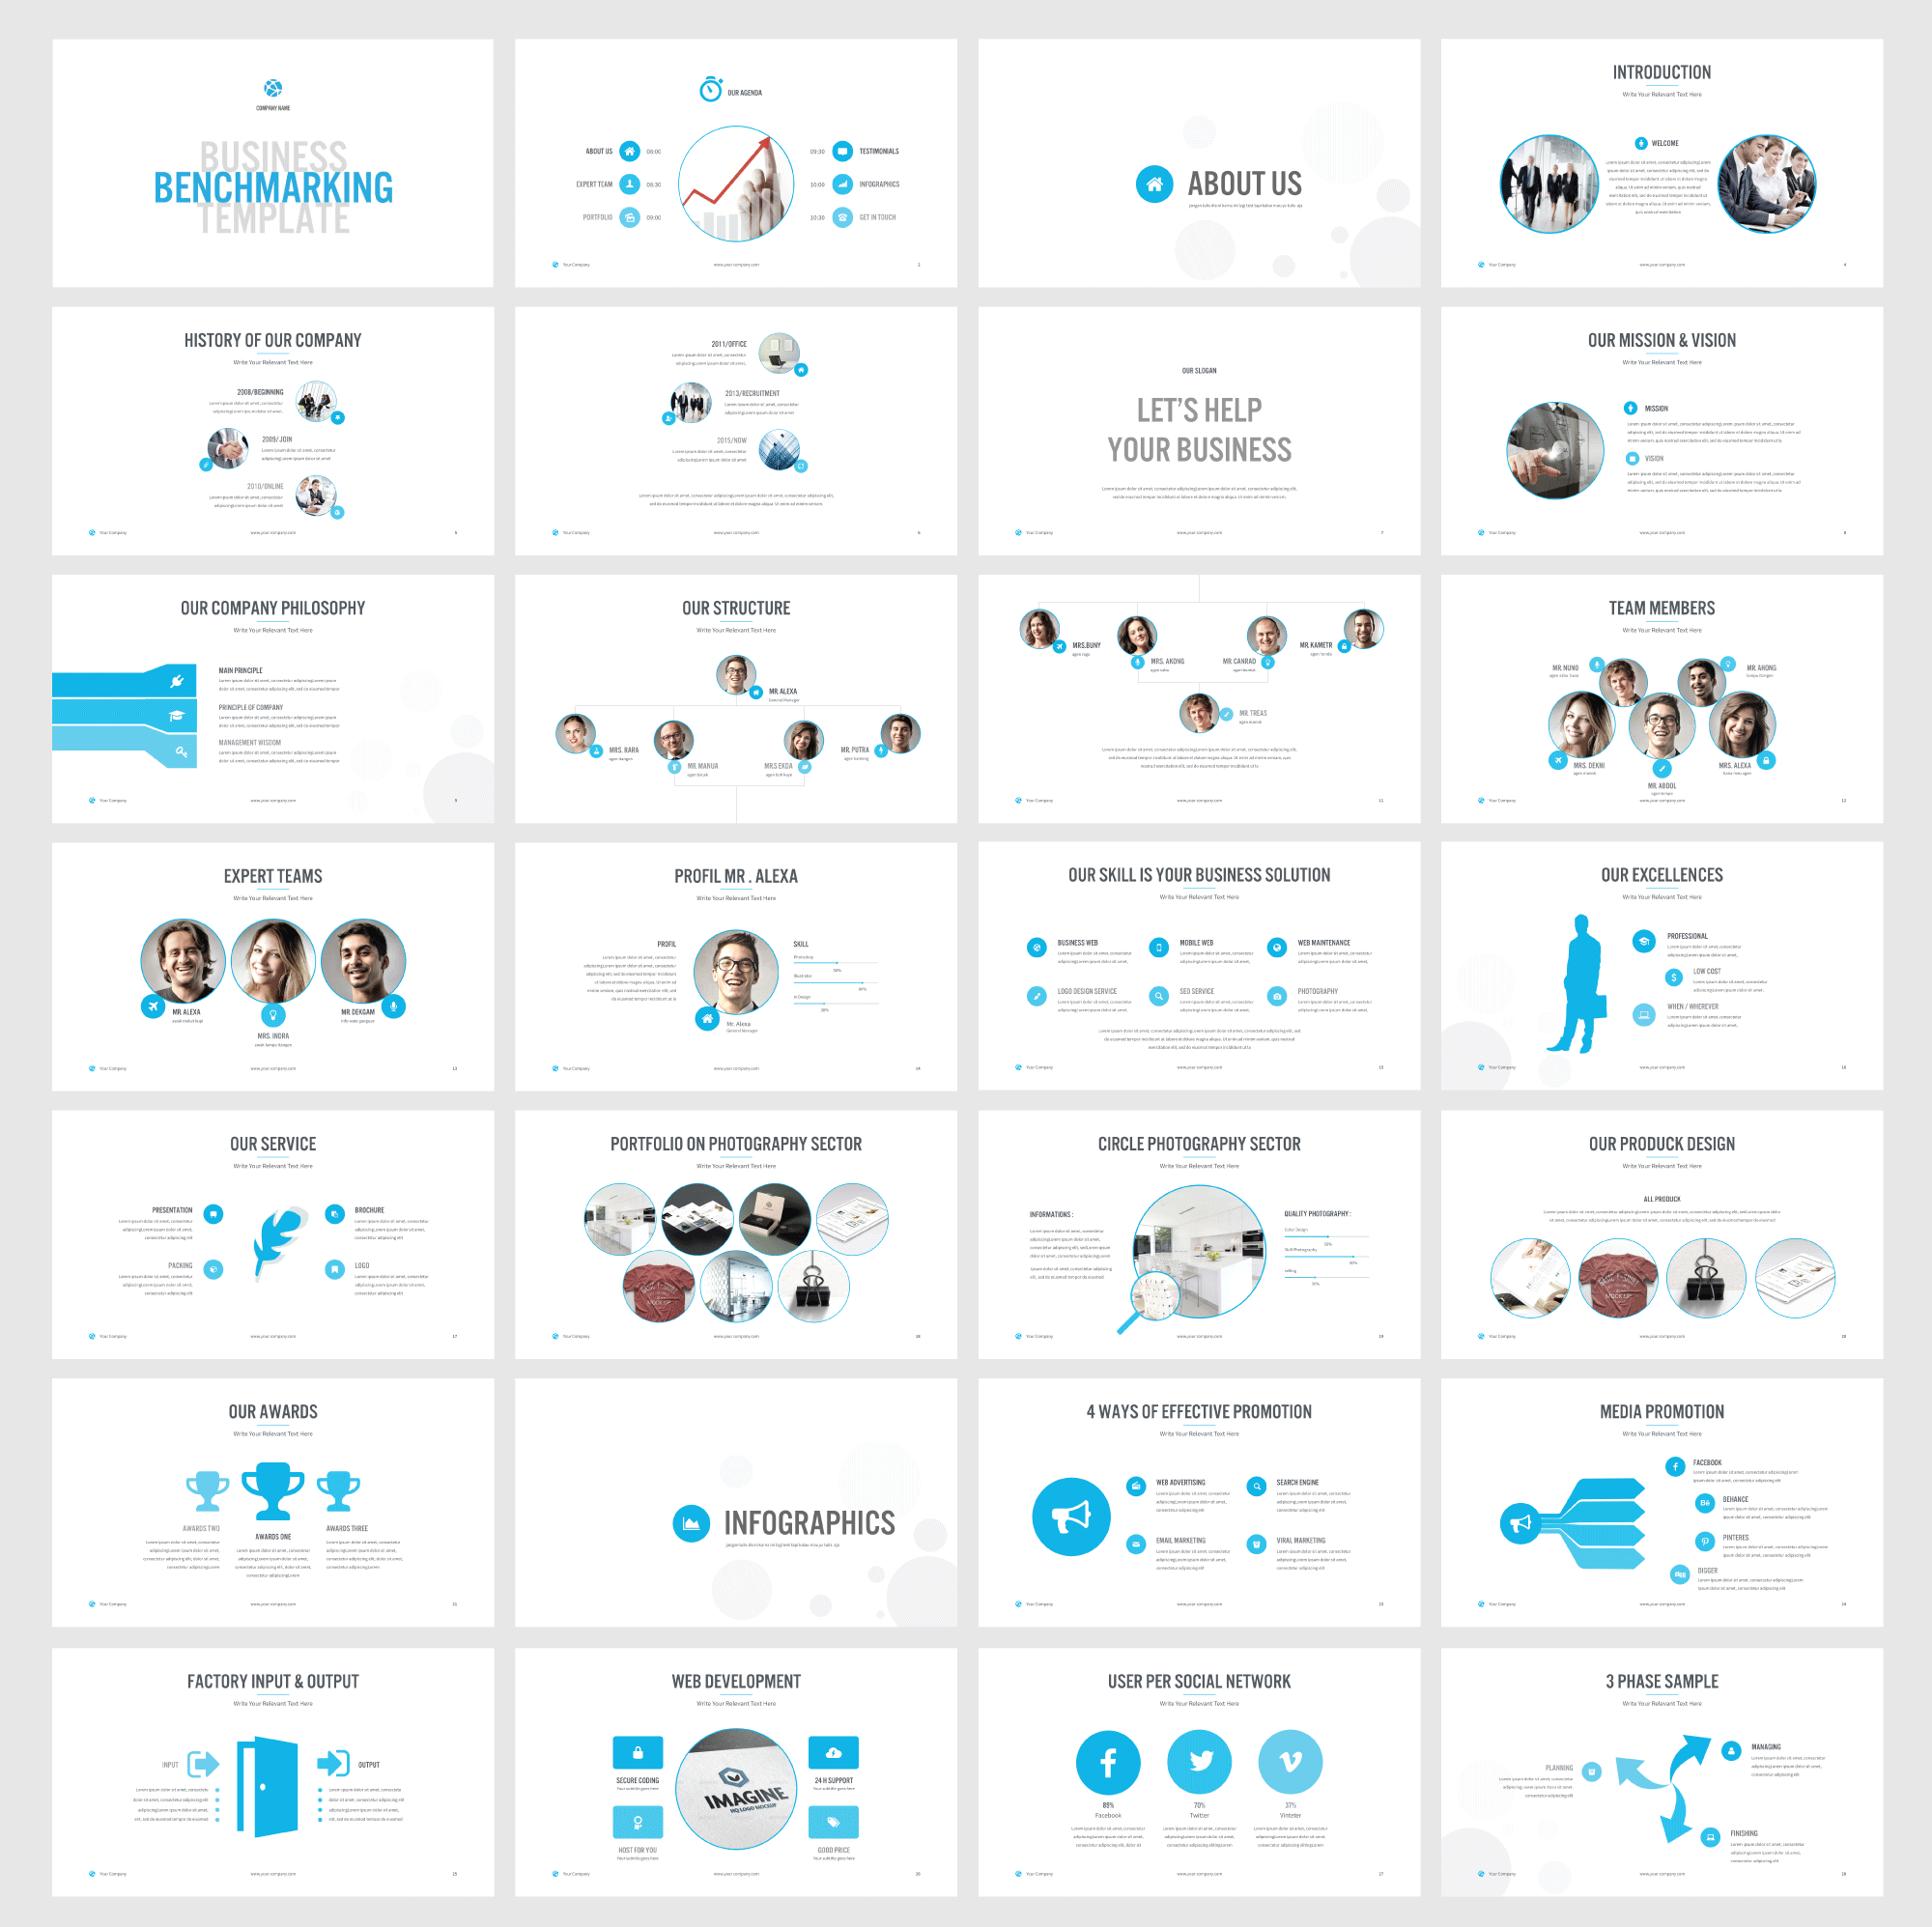 Benchmarking powerpoint template by shafura on creative market benchmarking powerpoint template by shafura on creative market toneelgroepblik Choice Image